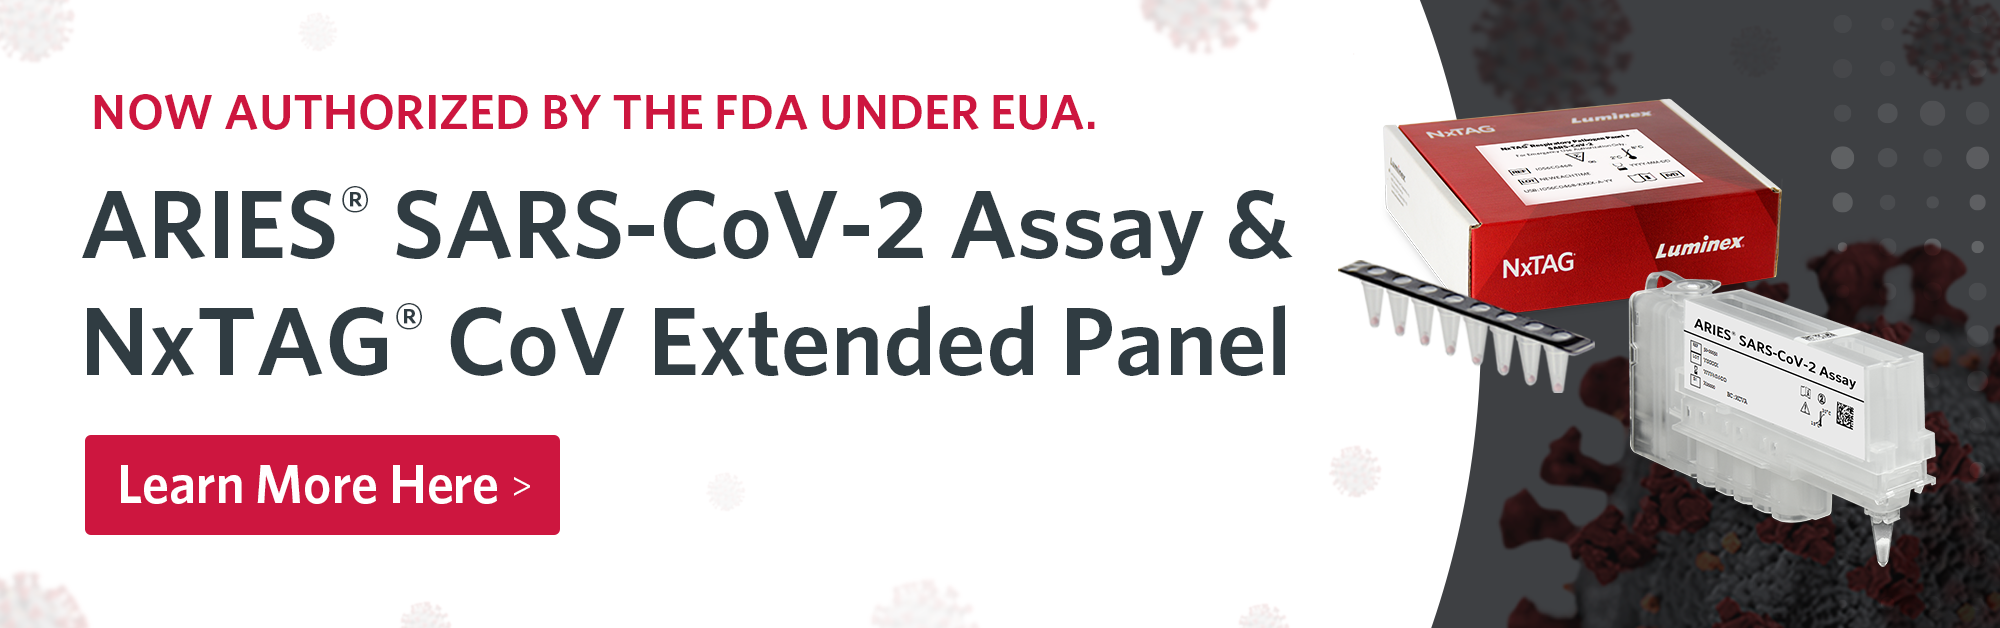 ARIES SARS-CoV-2 Assay & NxTAG CoV Extended Panel: Now Authorized by the FDA Under EUA.